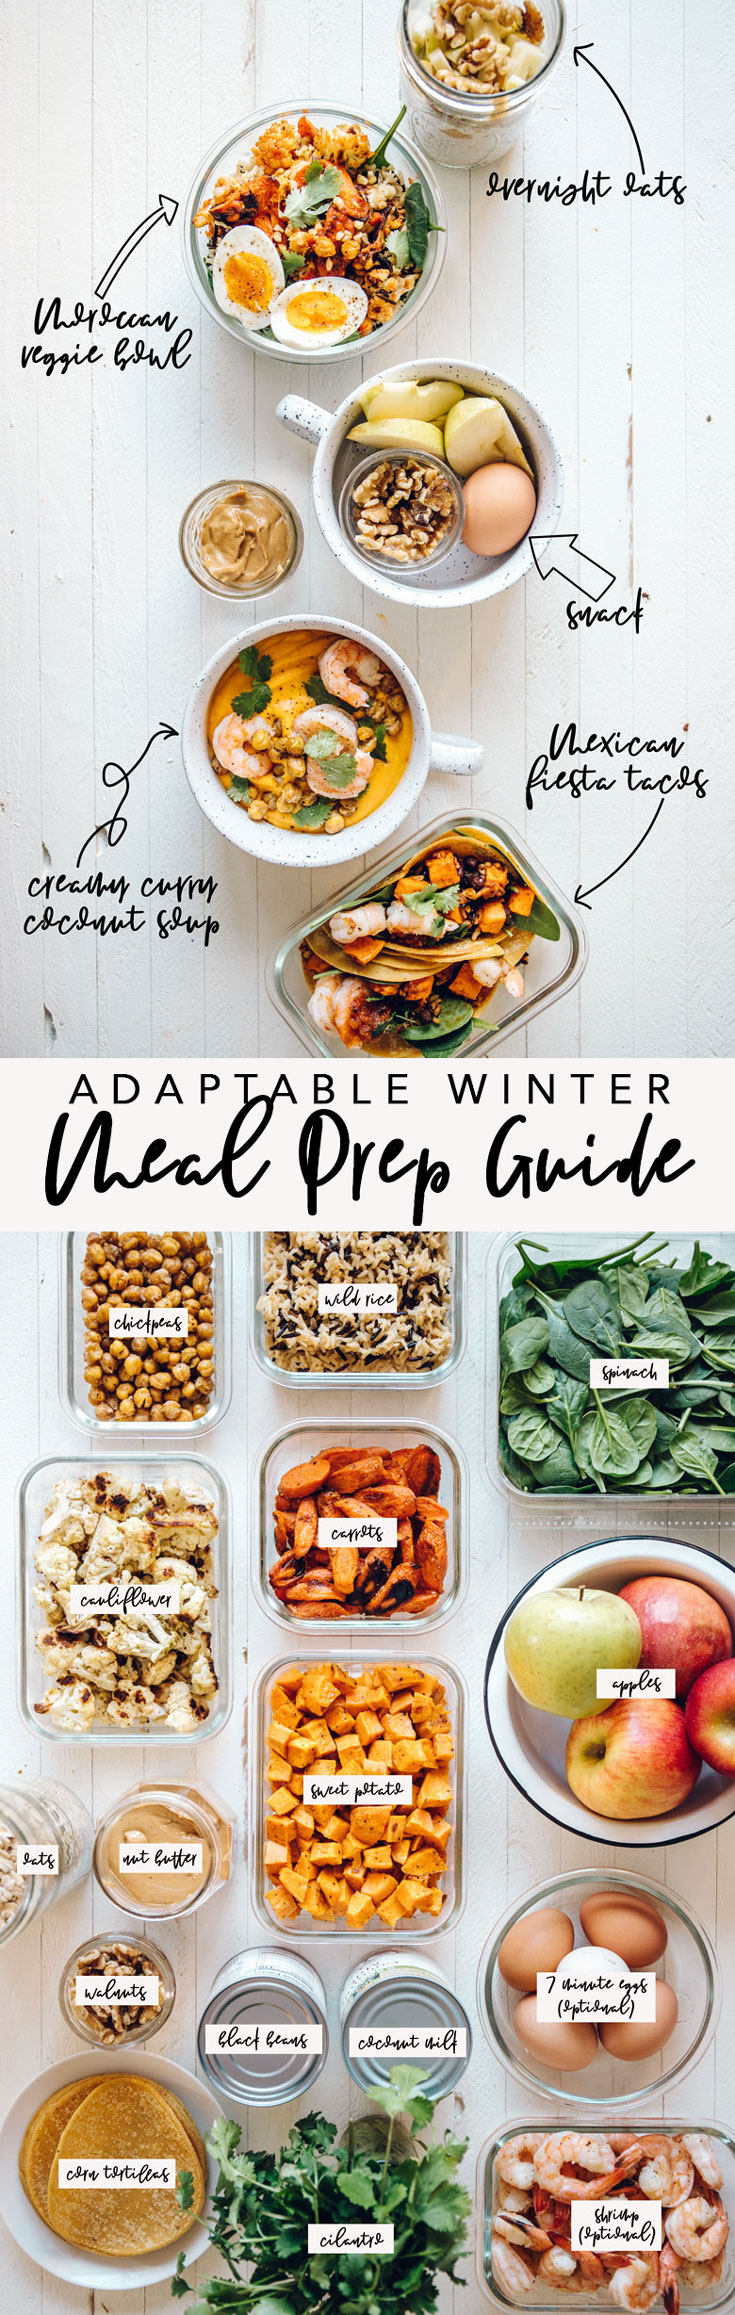 Adaptable Winter Meal Prep Guide